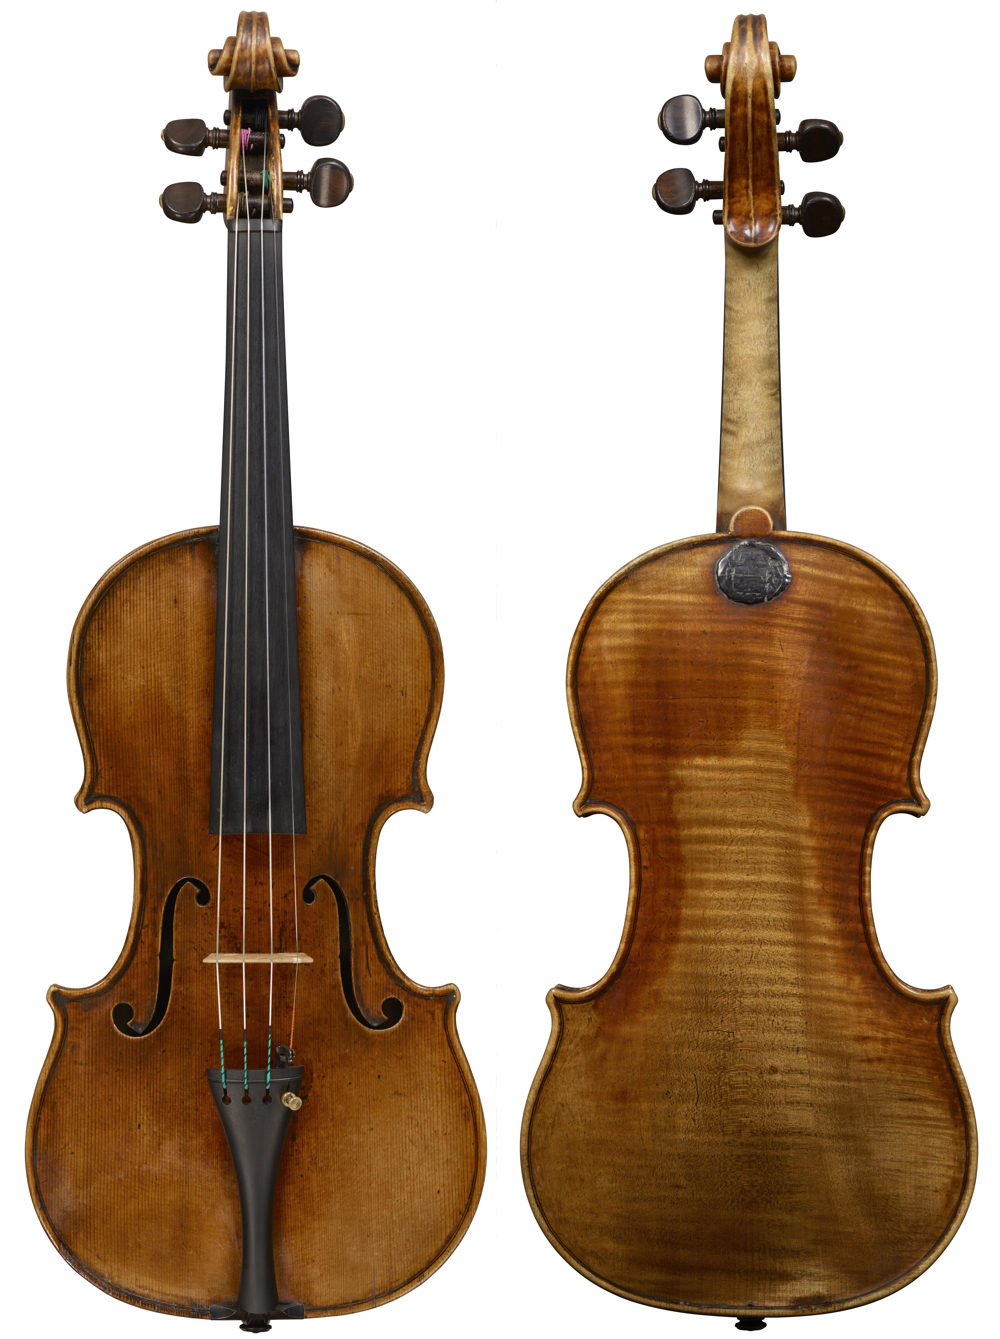 The 'Prince Khevenhuller' Stradivari of 1733